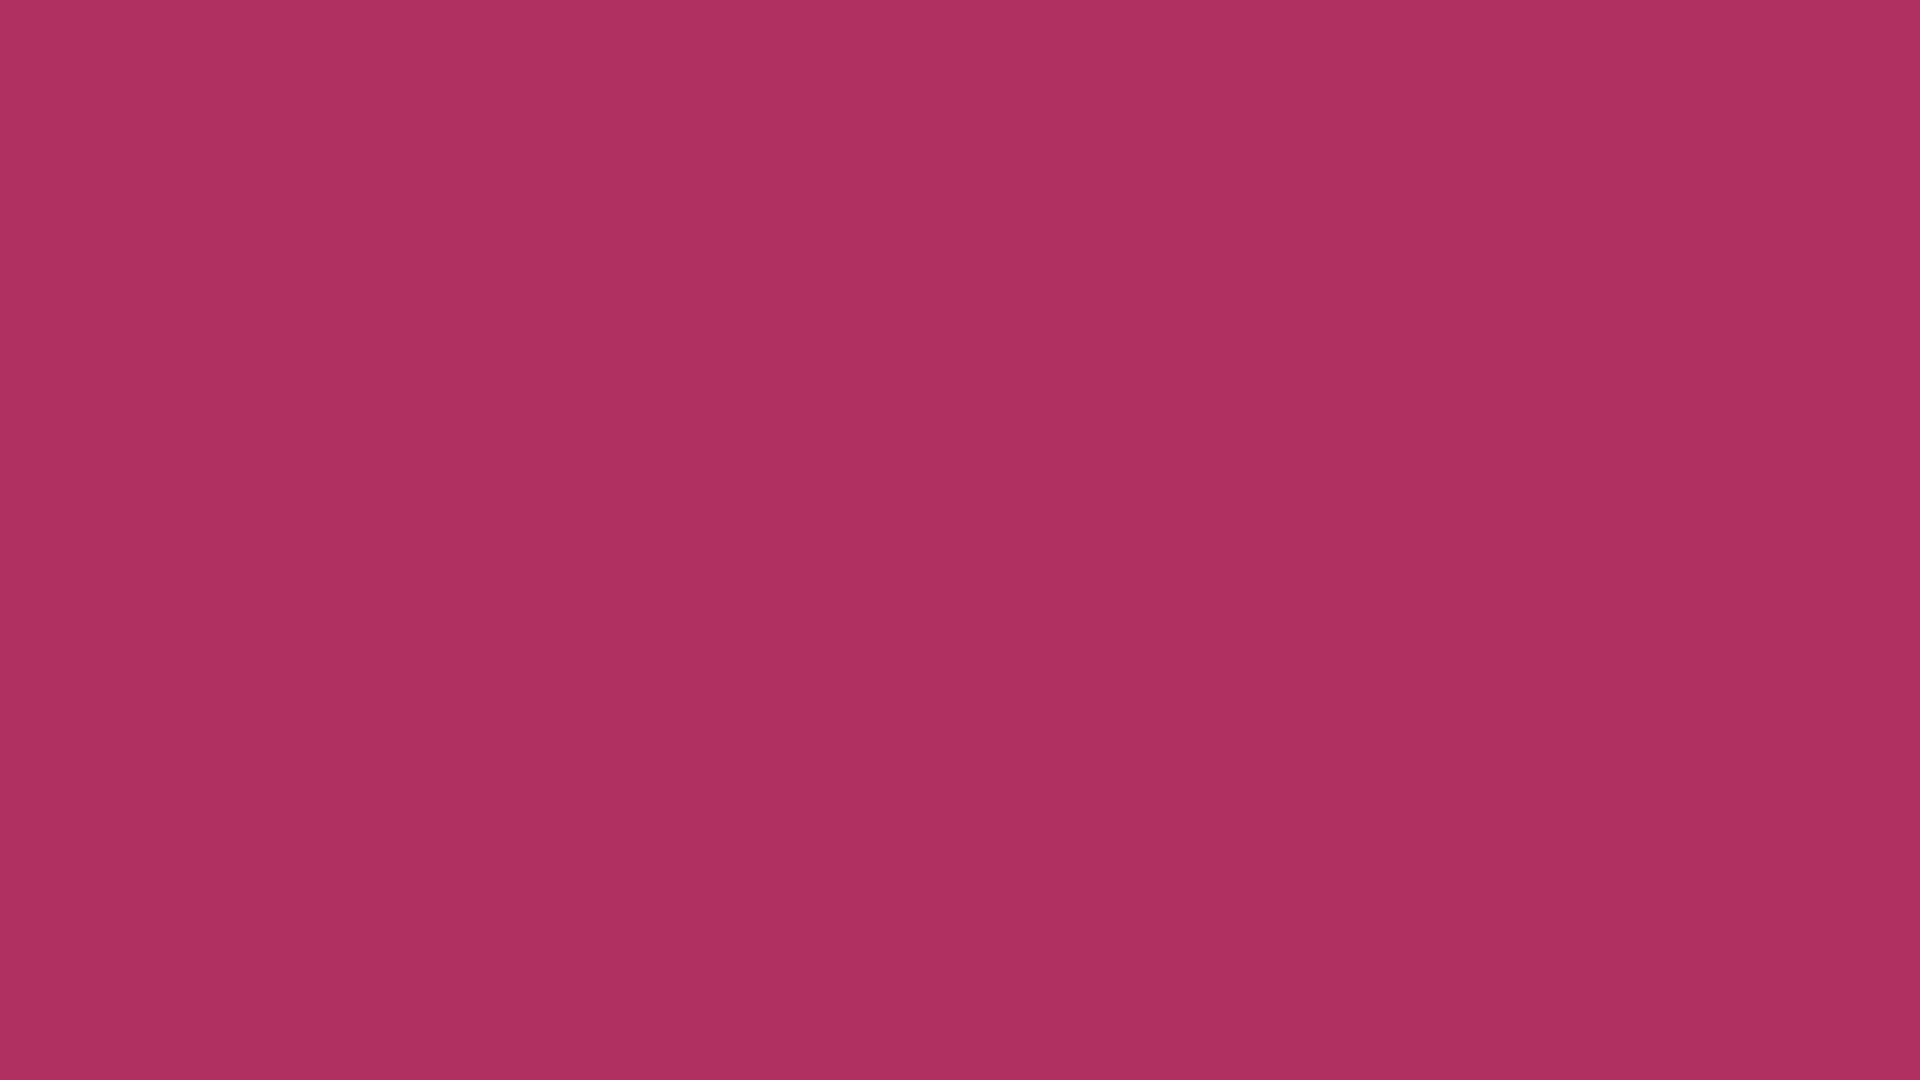 1920x1080 Maroon X11 Gui Solid Color Background